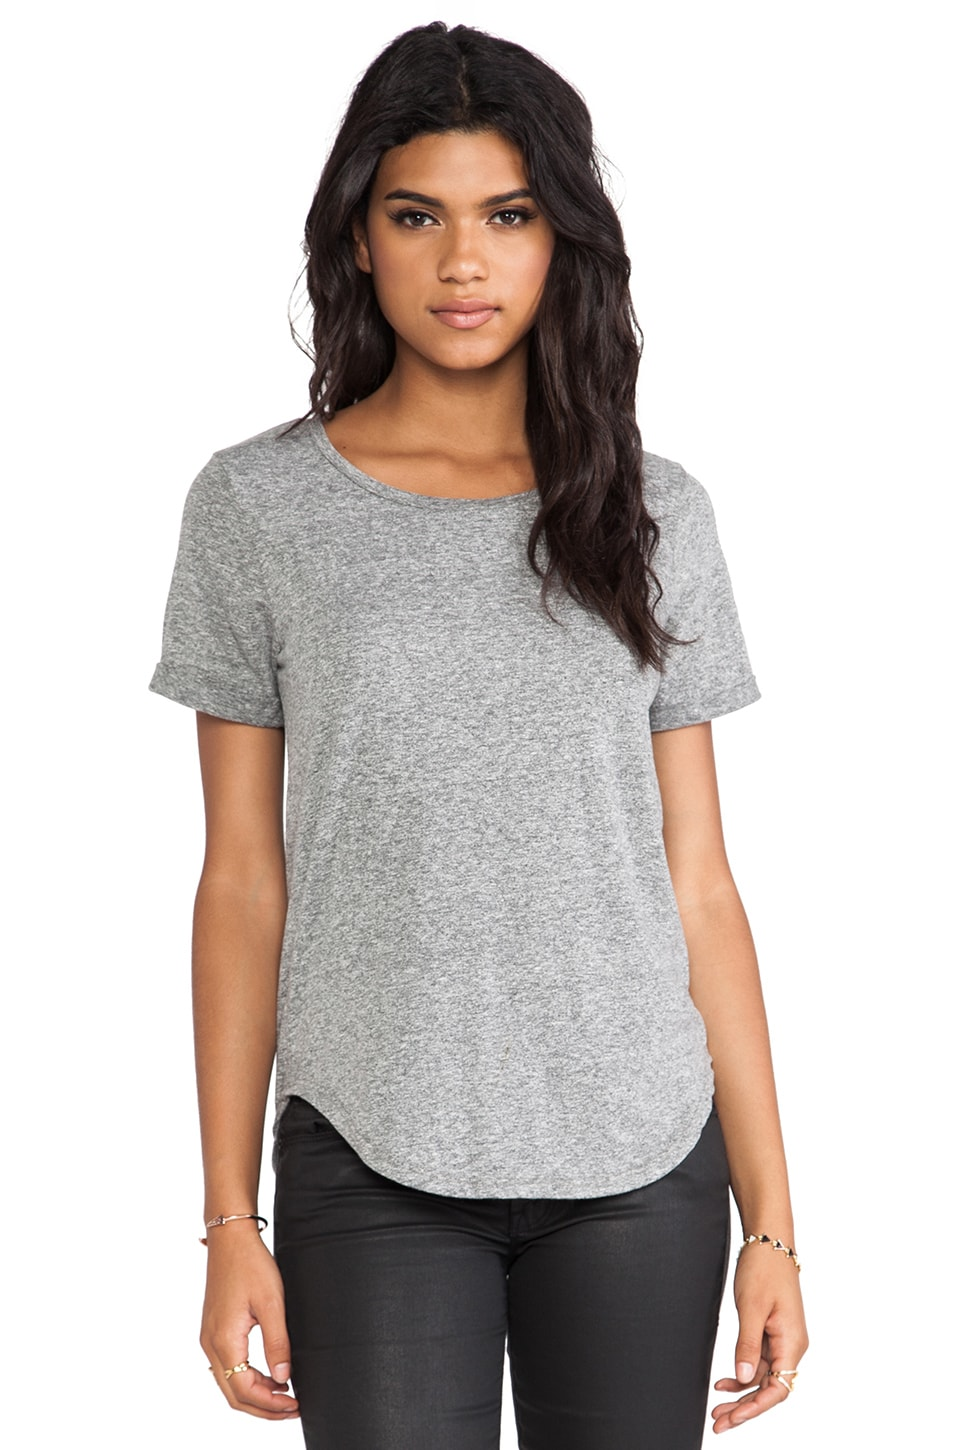 EVER Shirt Tail Short Sleeve Tee in Heather Grey